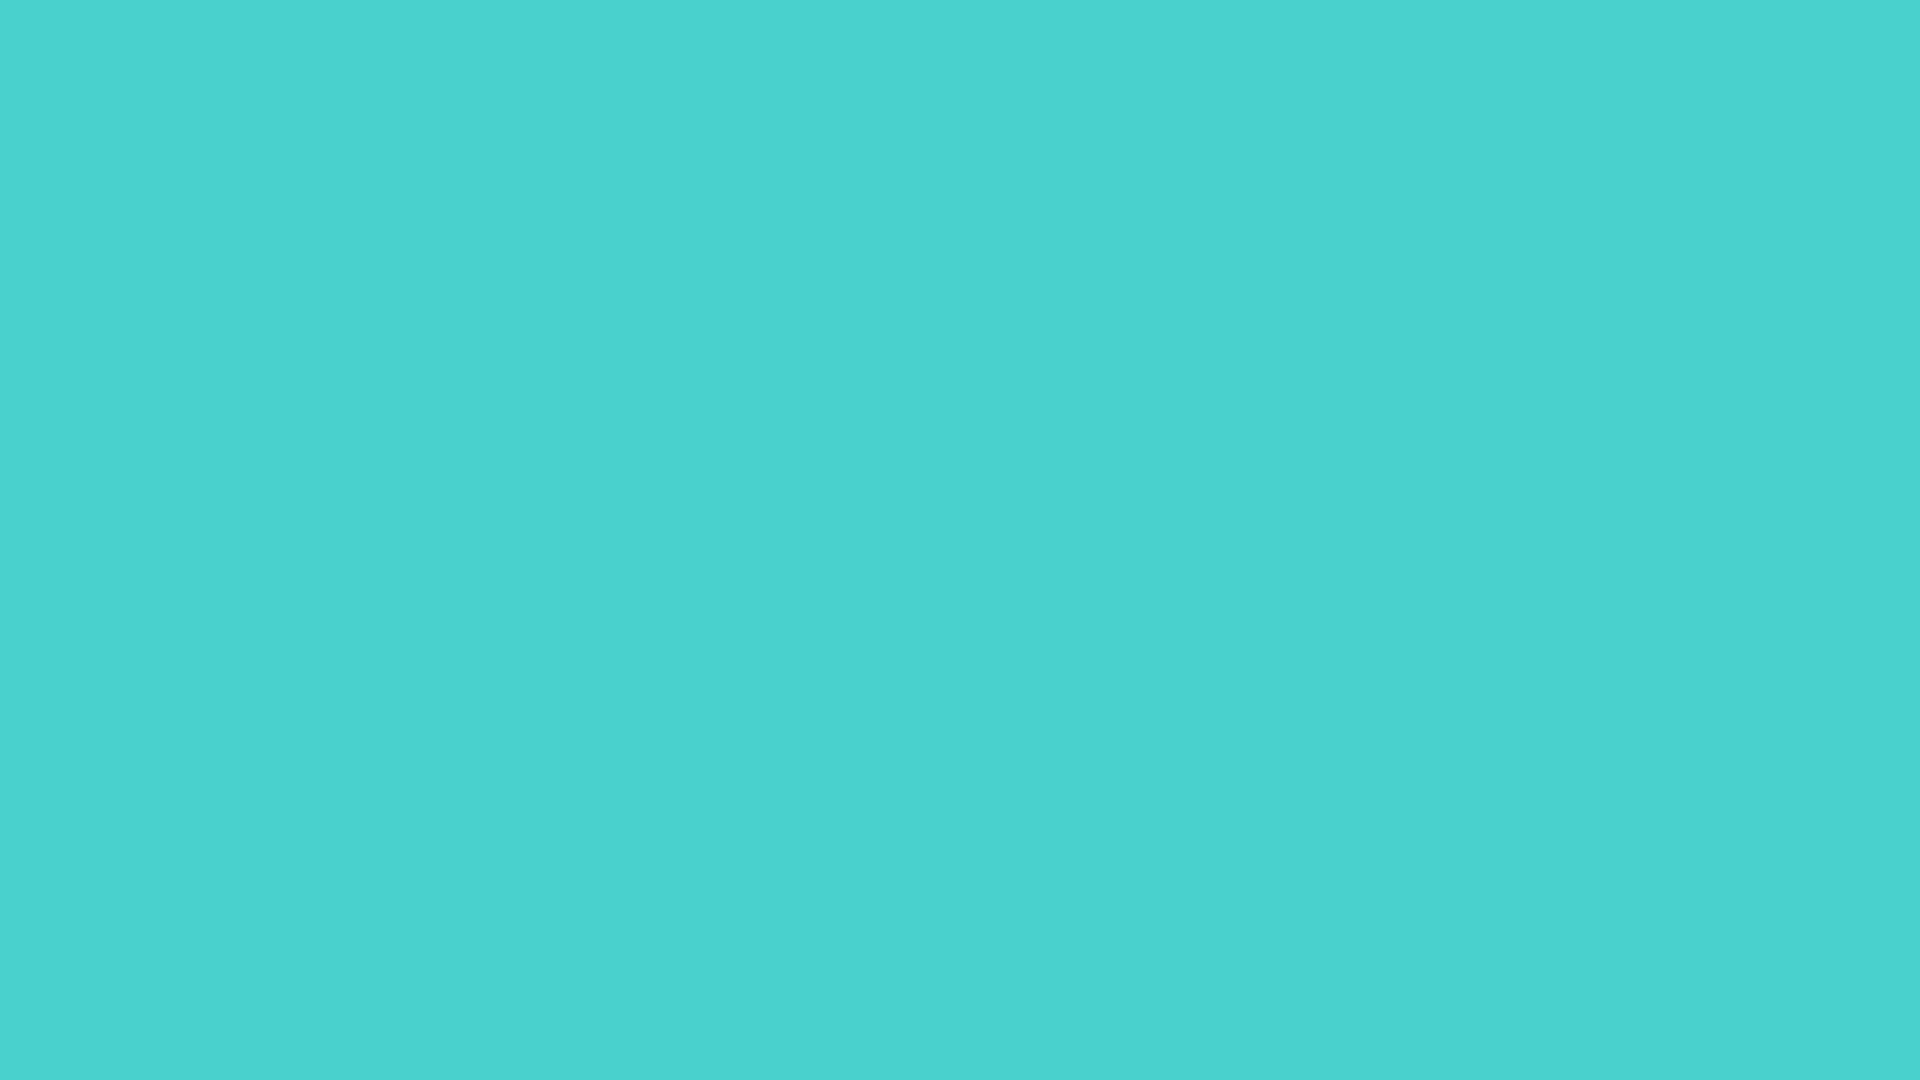 Privacy Policy >> 1920x1080 Medium Turquoise Solid Color Background